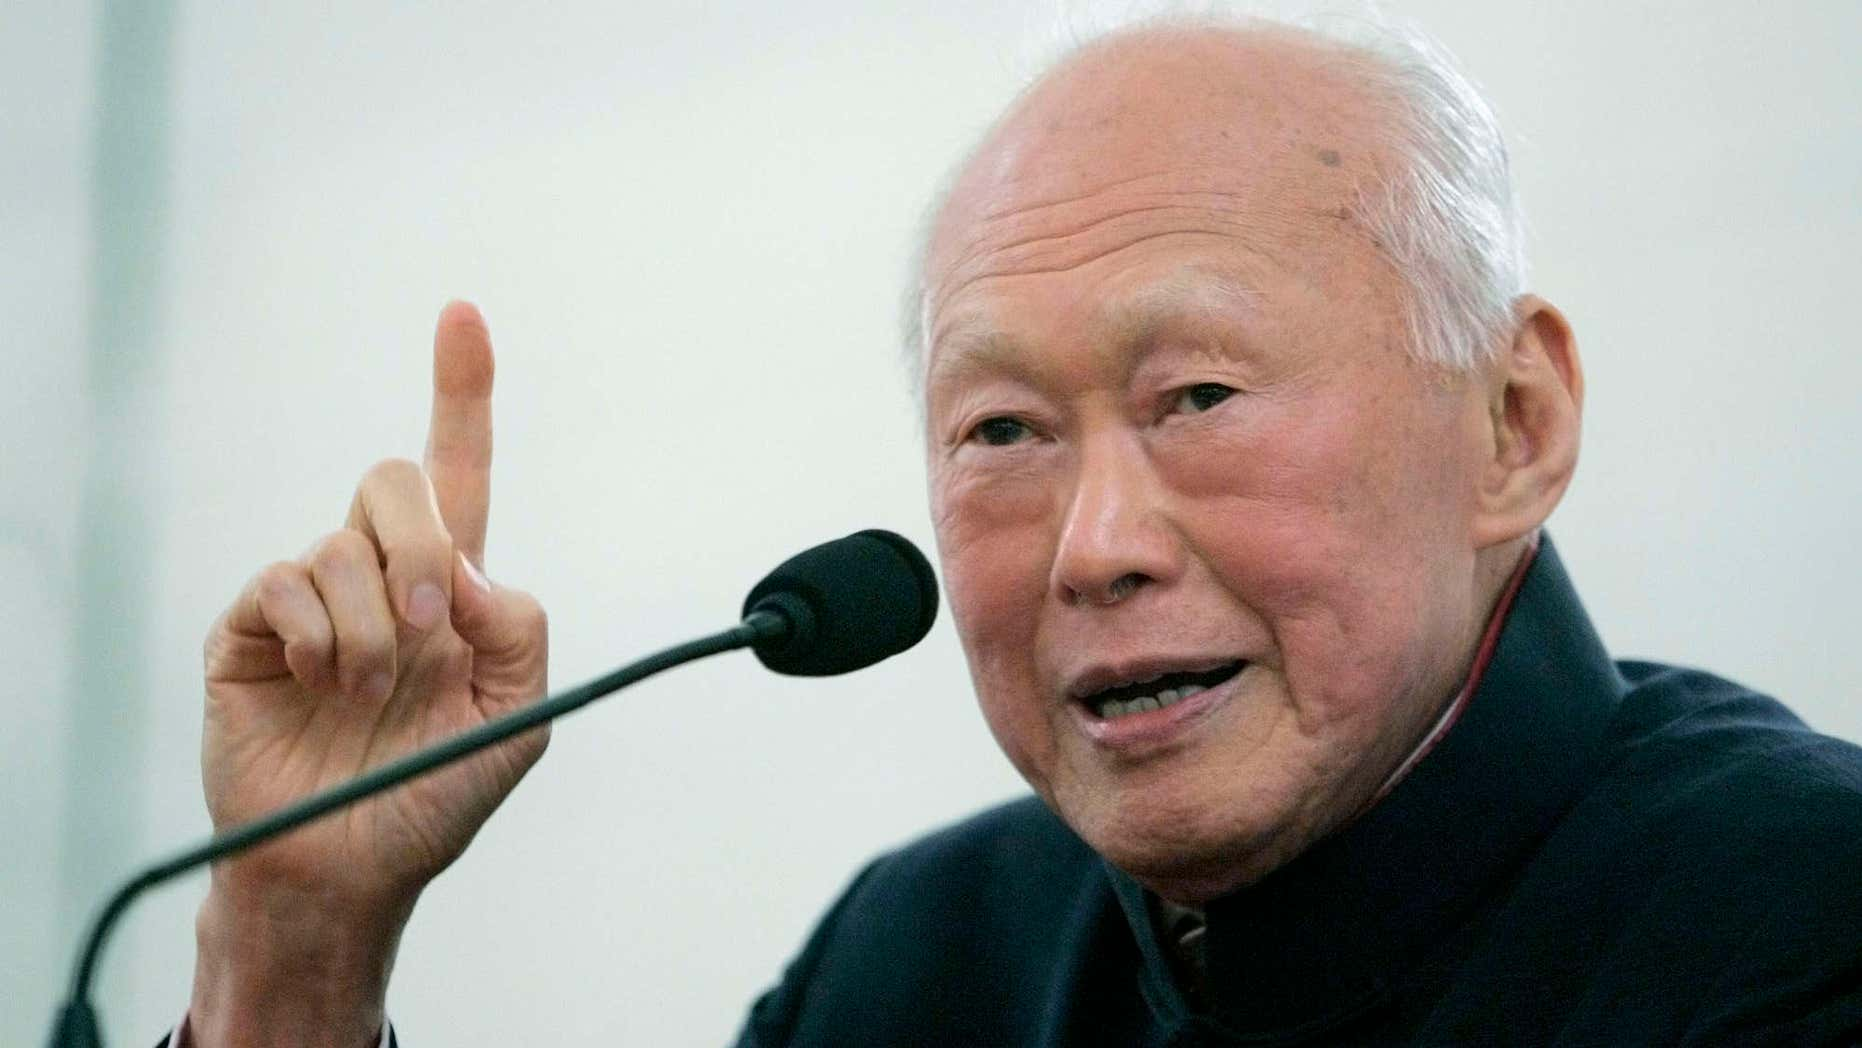 Dec. 20, 2014: Singapore's Lee Kuan Yew speaks to a group of journalists and publishers in Singapore.